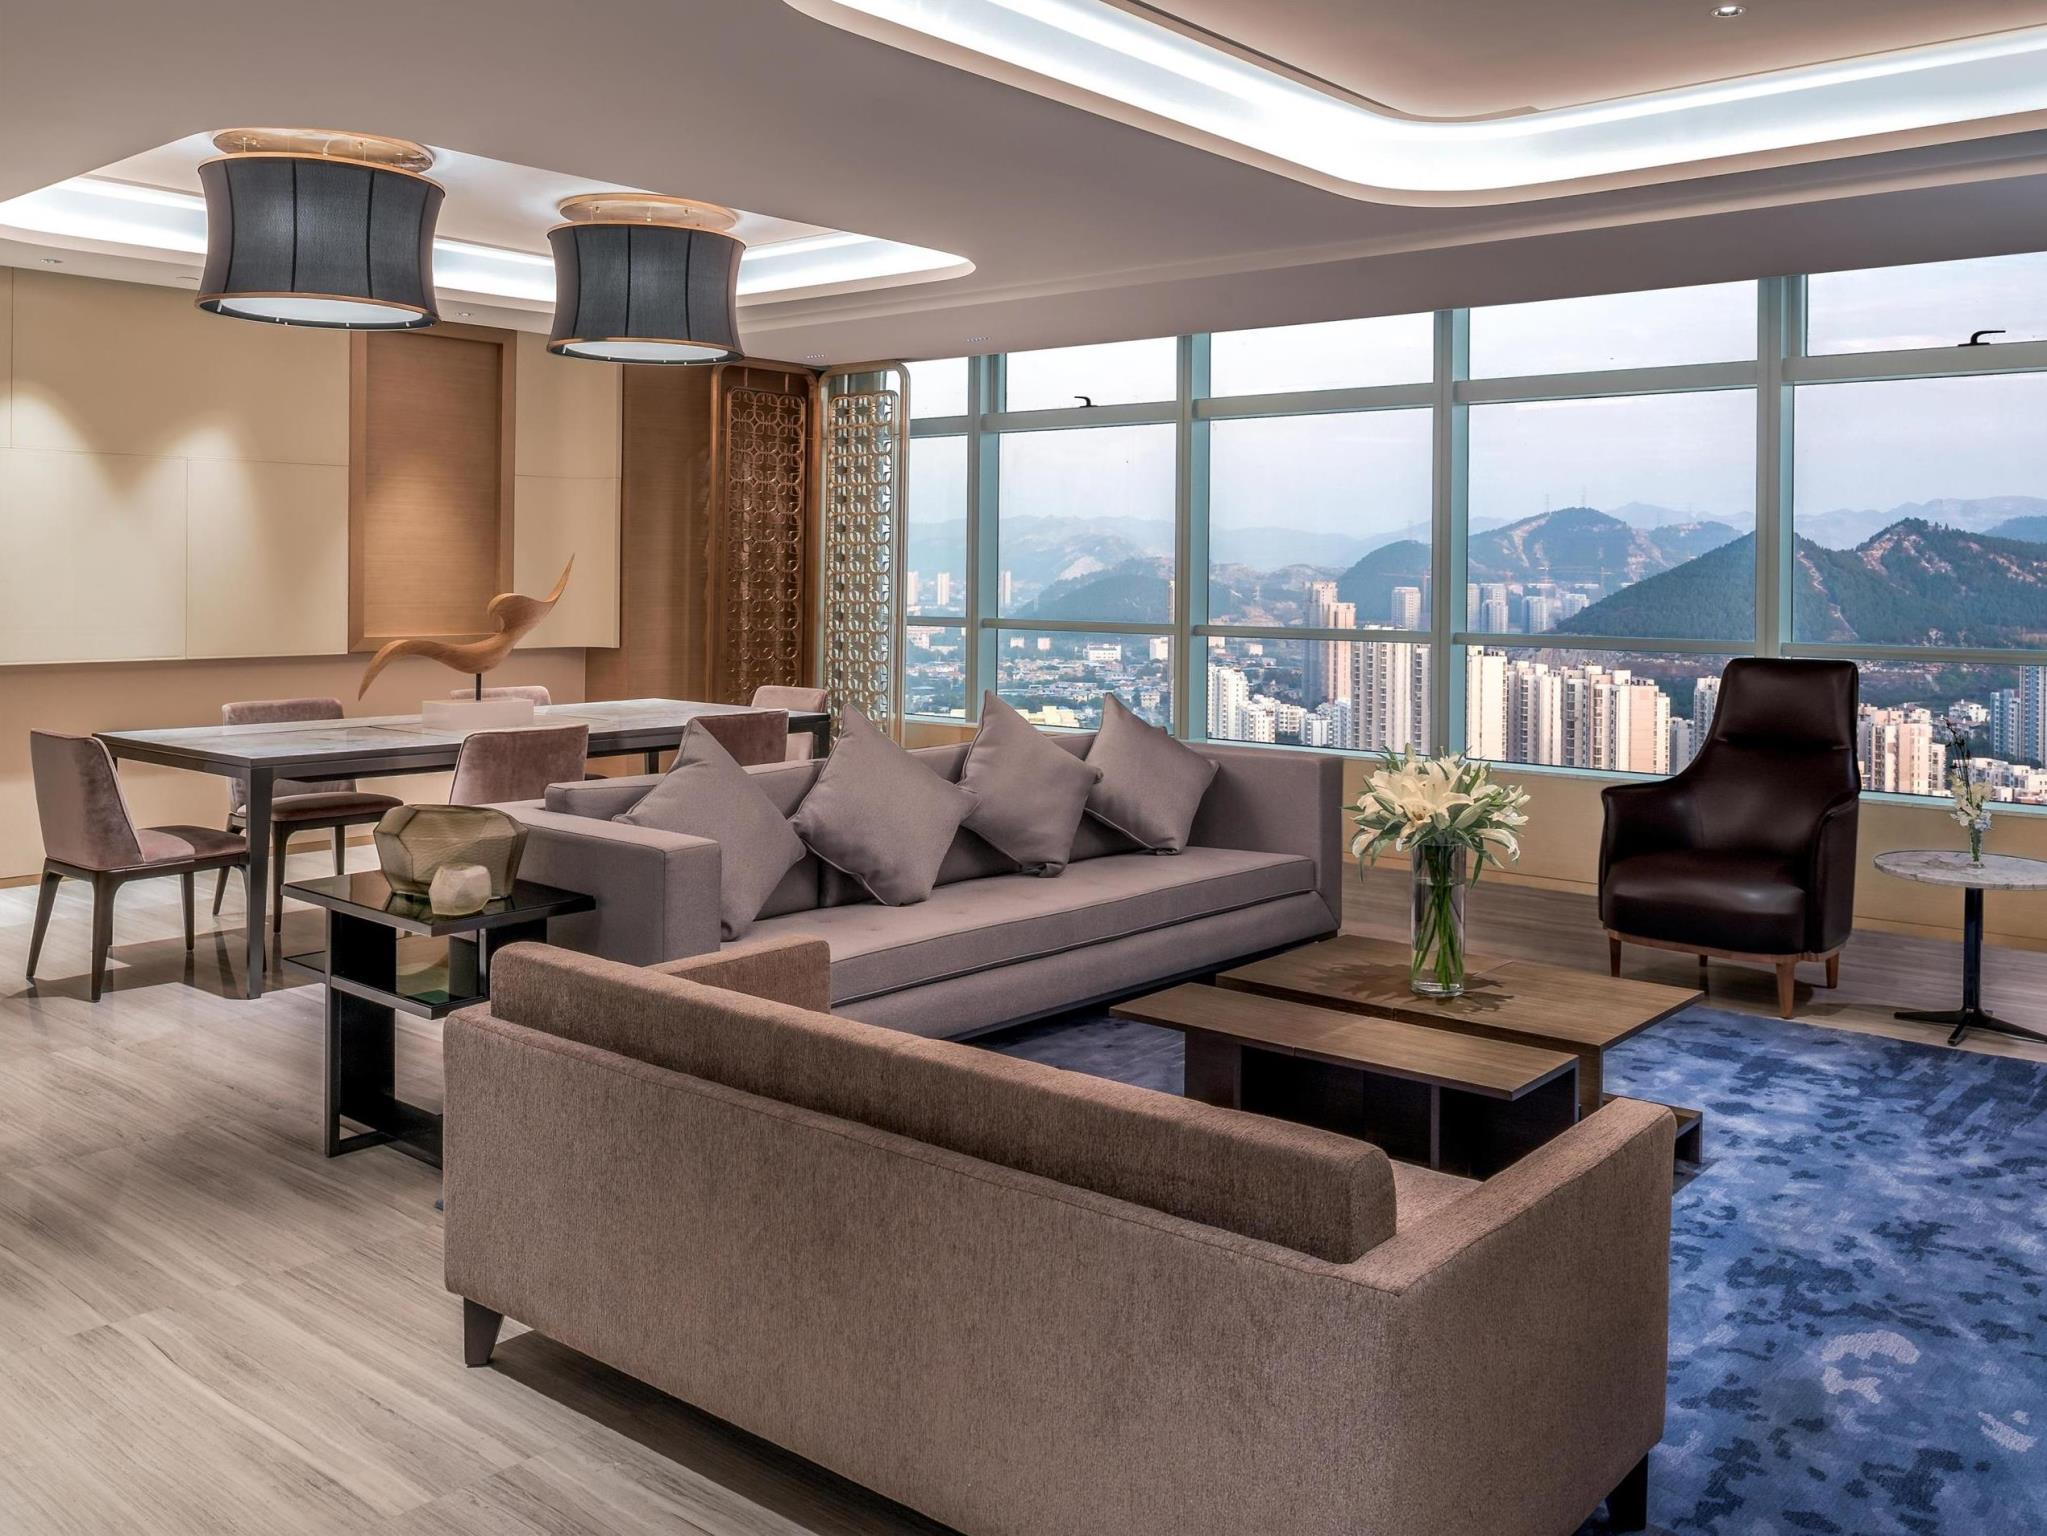 Hilton Jinan South Hotel & Residences, Jinan